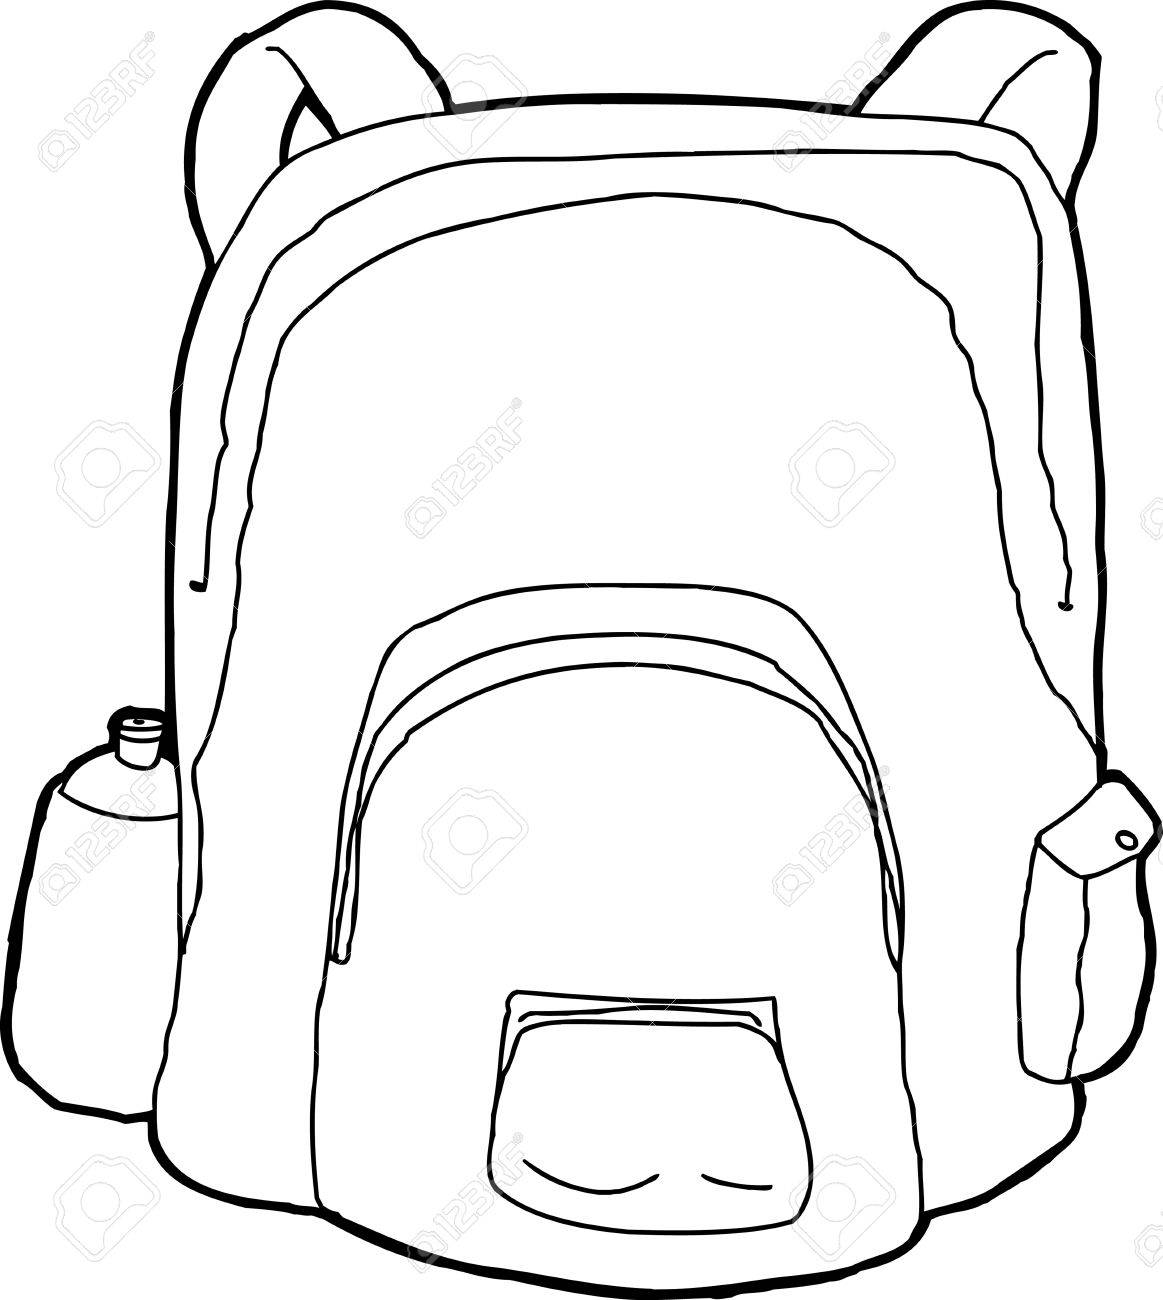 hand drawn cartoon of outlined backpack with water bottle royalty